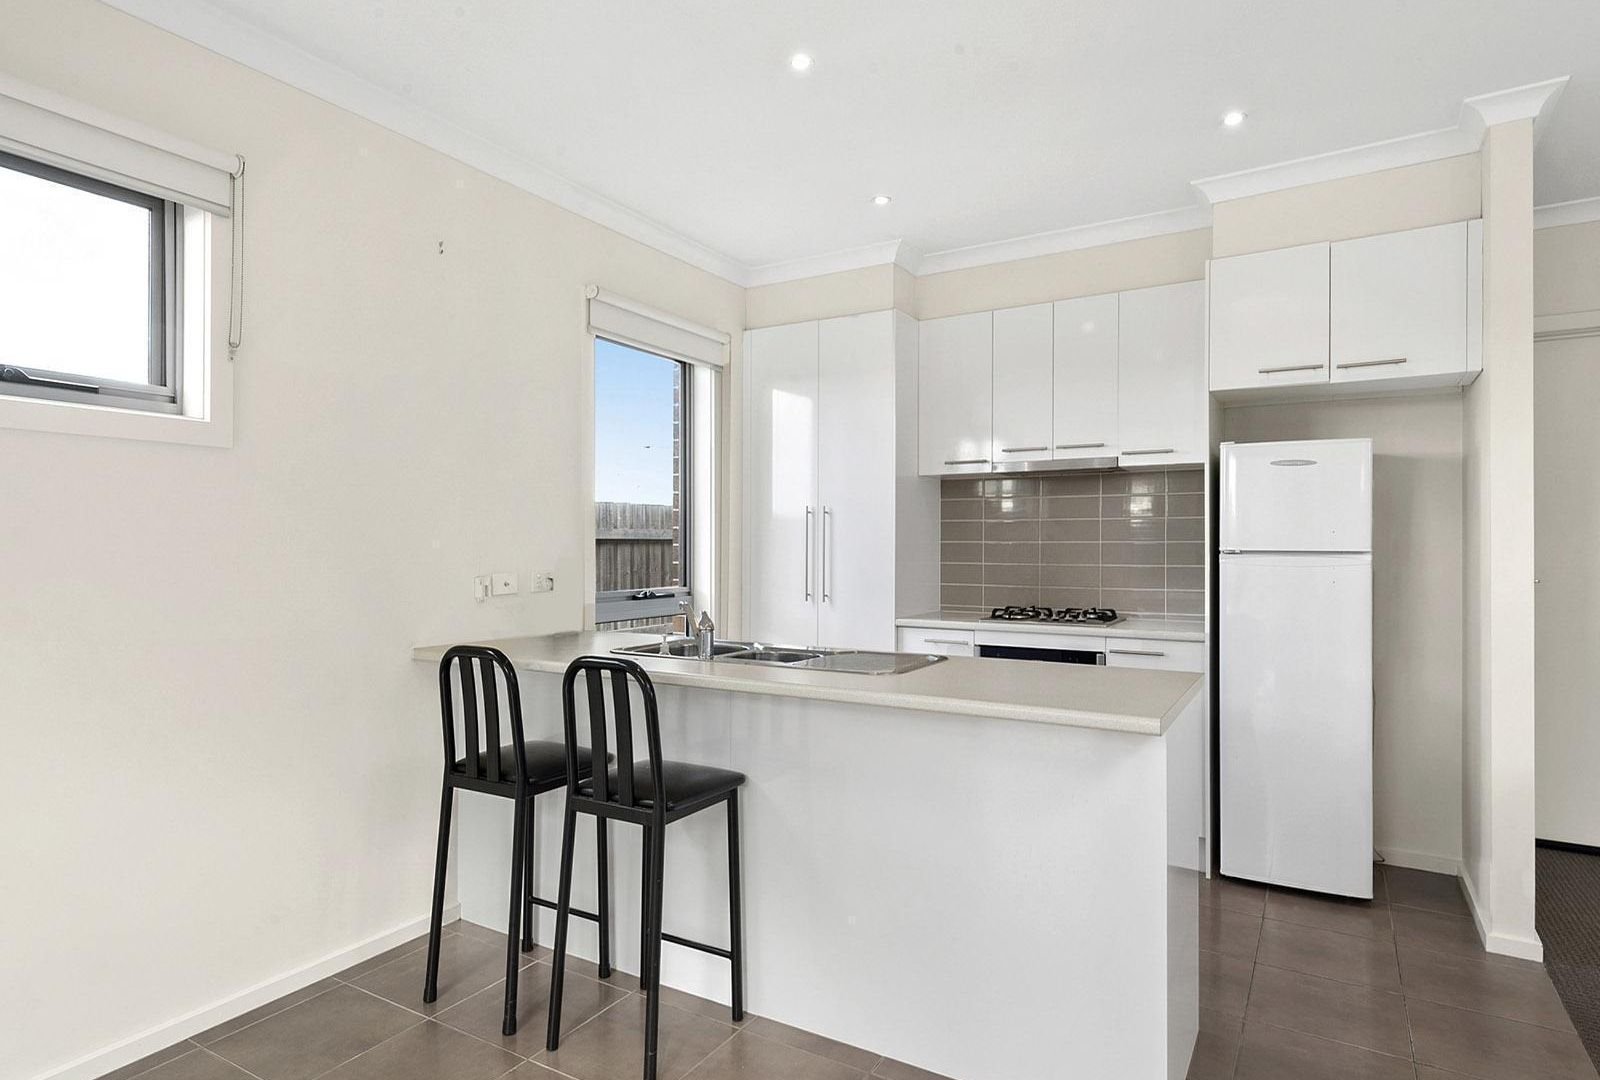 2/6 Nikola Court, Marshall VIC 3216, Image 1